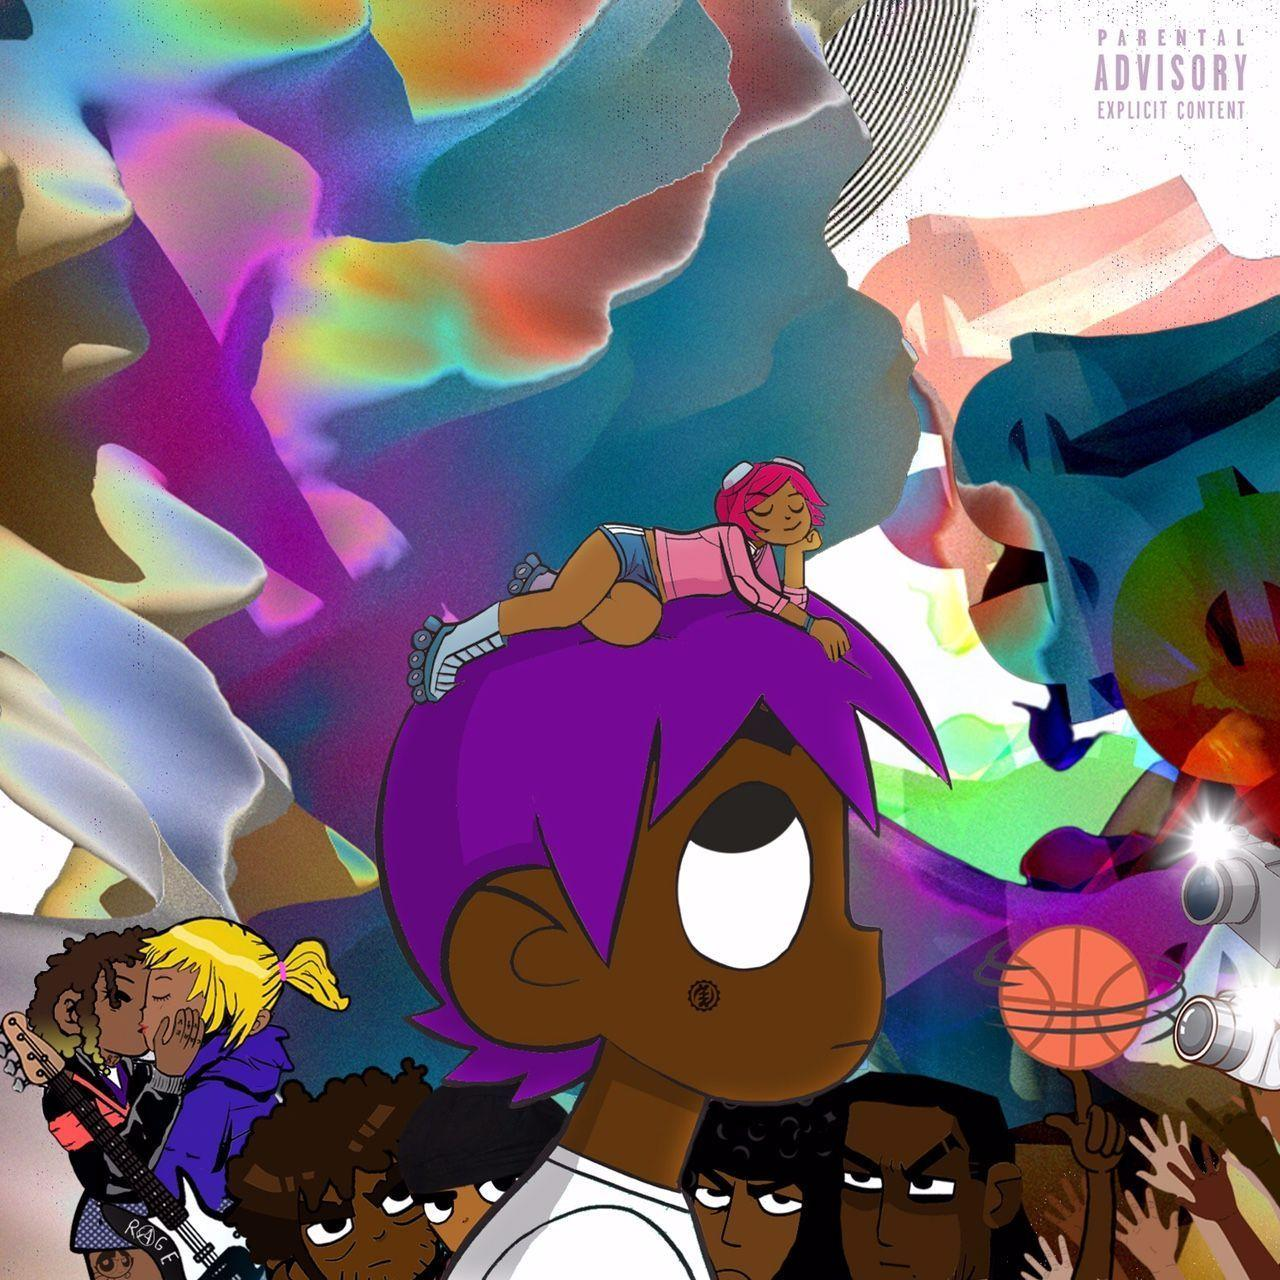 Lil Uzi Vert Vs The World Wallpapers Wallpaper Cave See more of lil uzi vert on facebook. lil uzi vert vs the world wallpapers